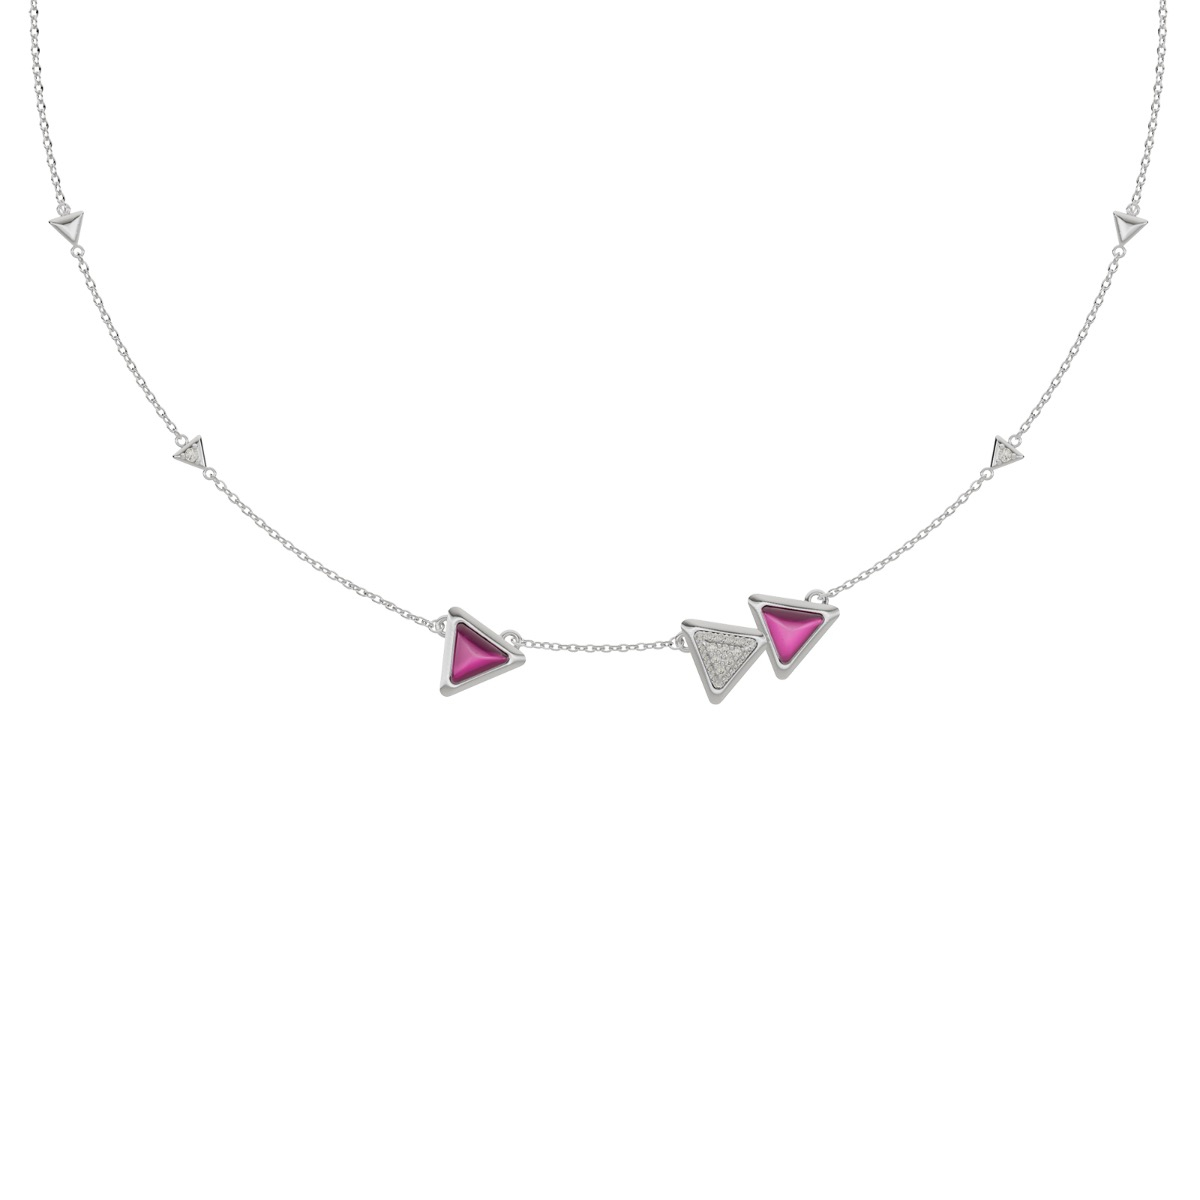 Necklace Dove Vai Forward Exquisite White Gold Pink Garnet and Diamonds